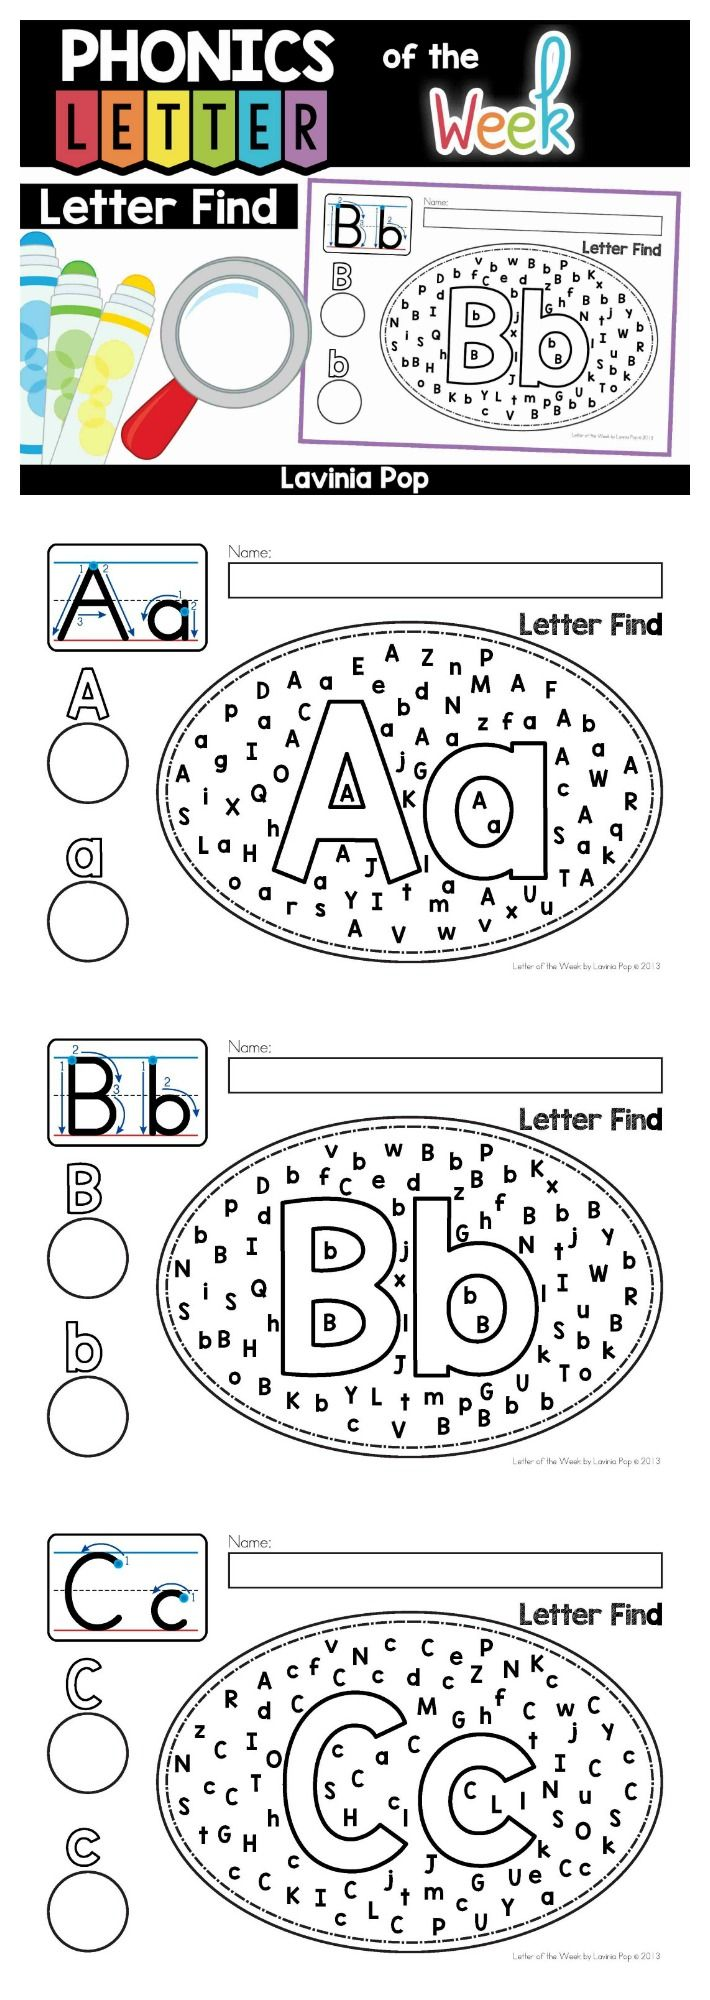 Alphabet Letter Find: Uppercase and Lower Case Letter identification activity. Use with bingo daubers, highlighters, markers, etc. Laminate or place inside plastic sleeve to use over and over with erasable markers.